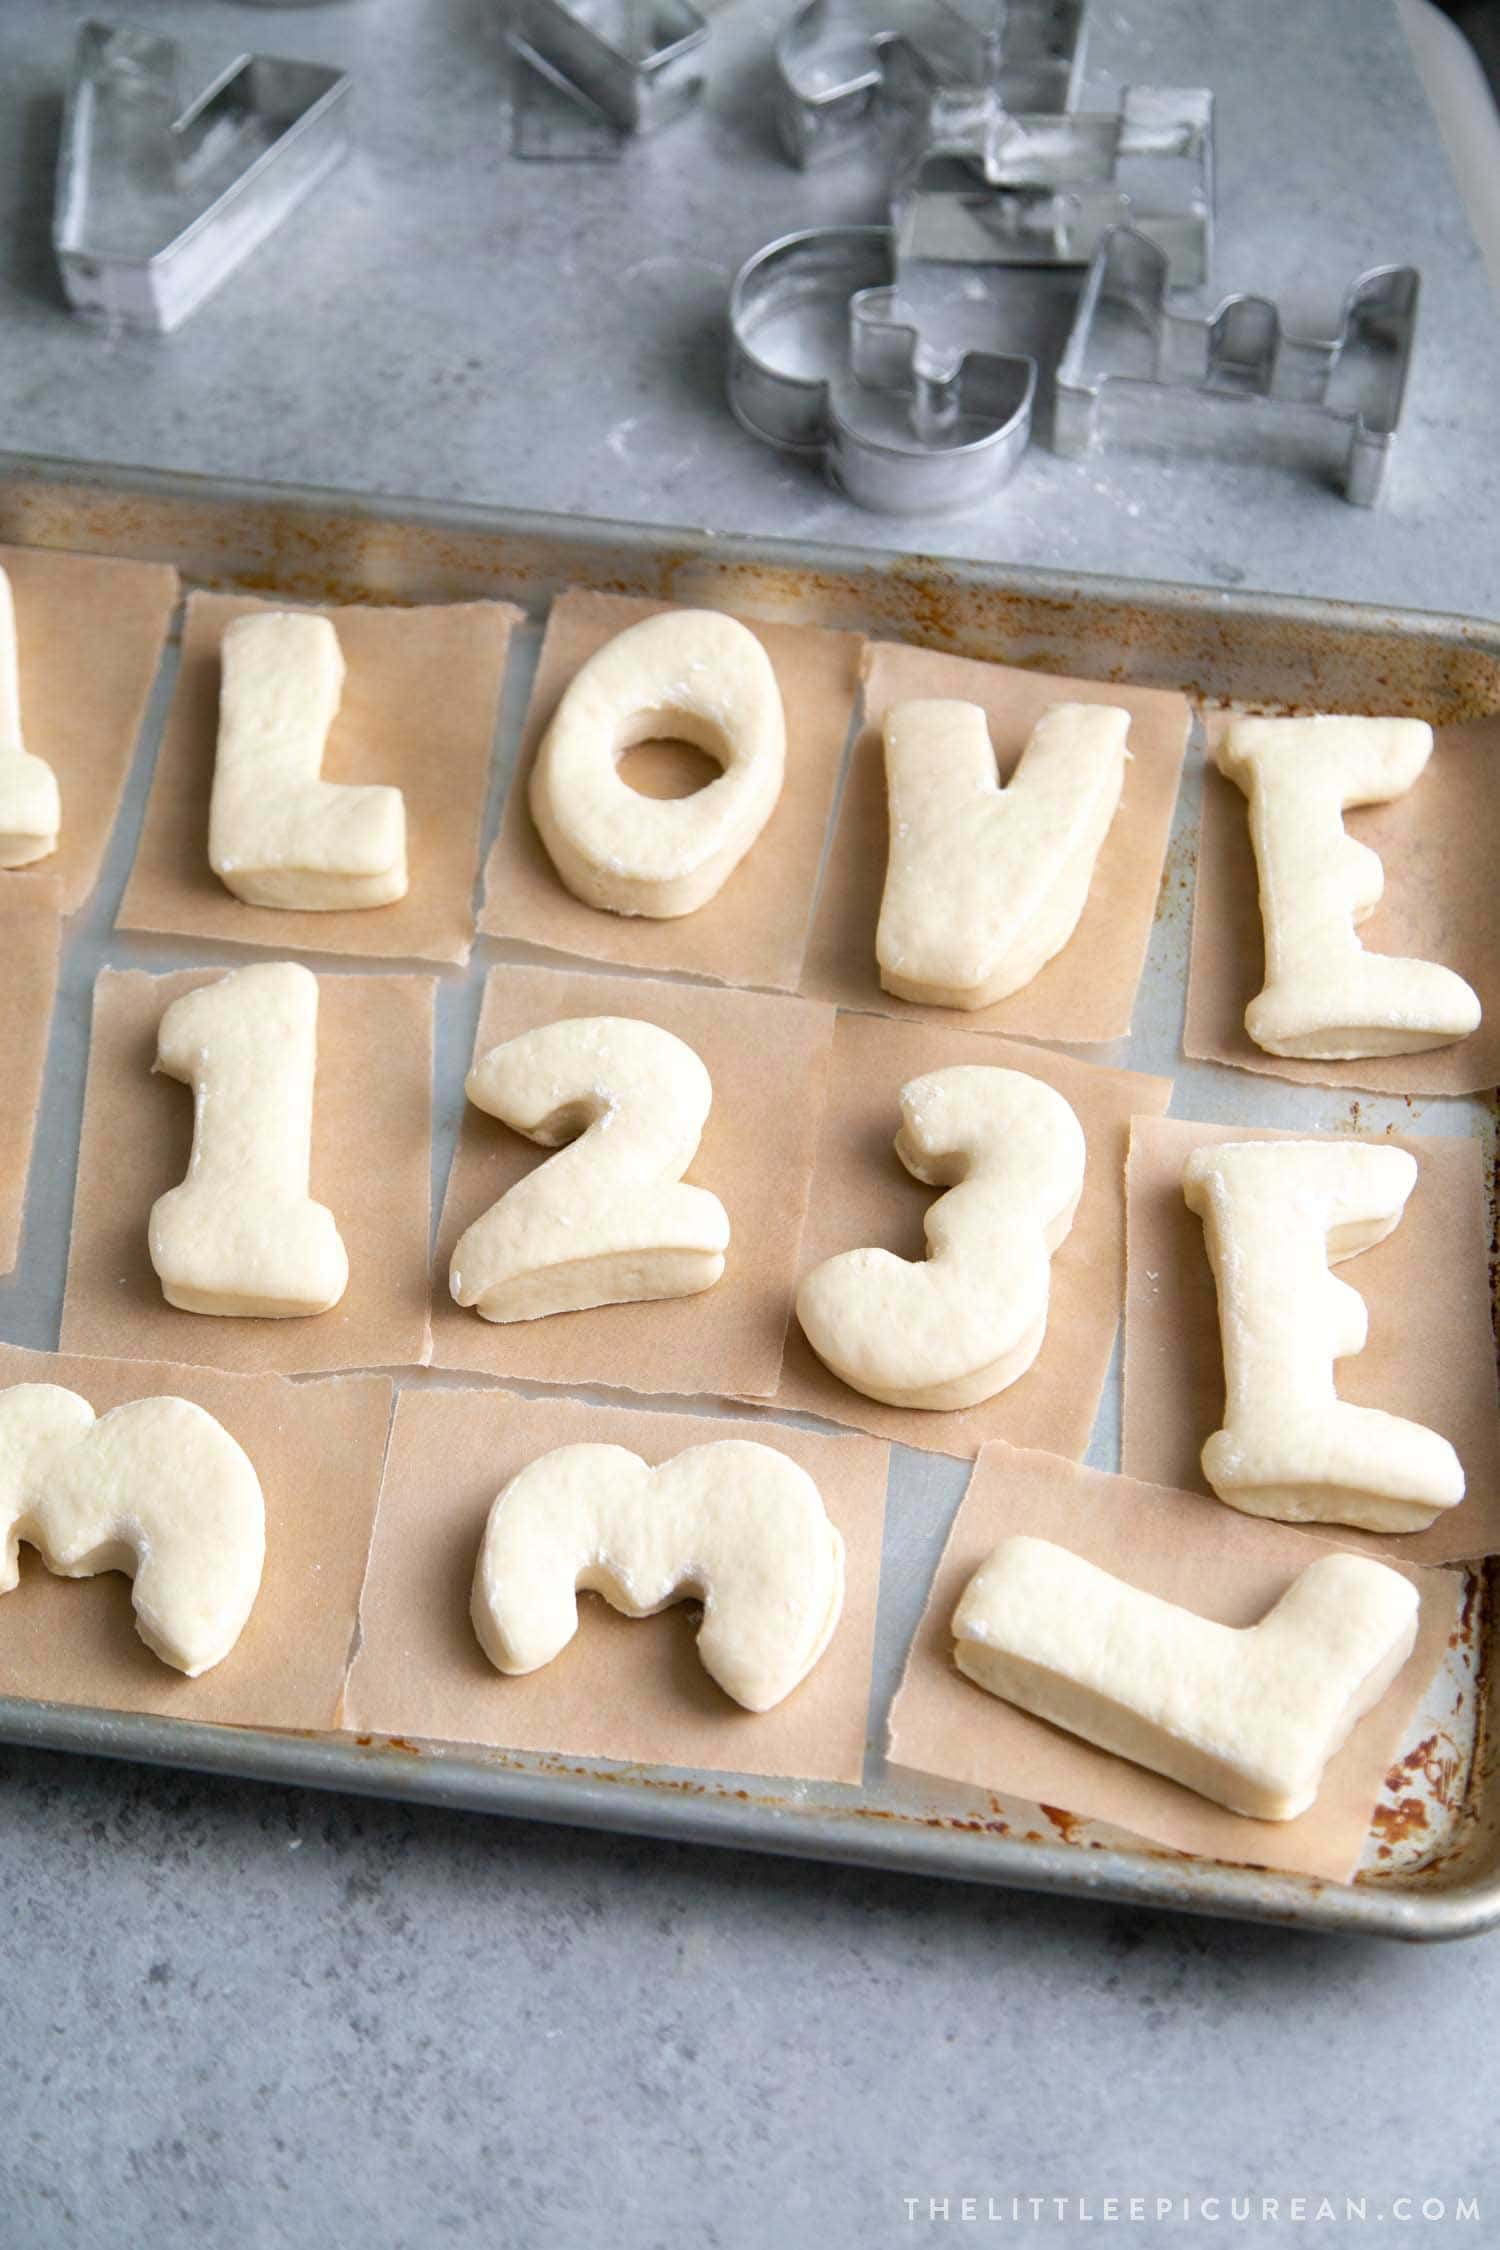 DIY alphabet donuts or letter donuts make with yeast donuts